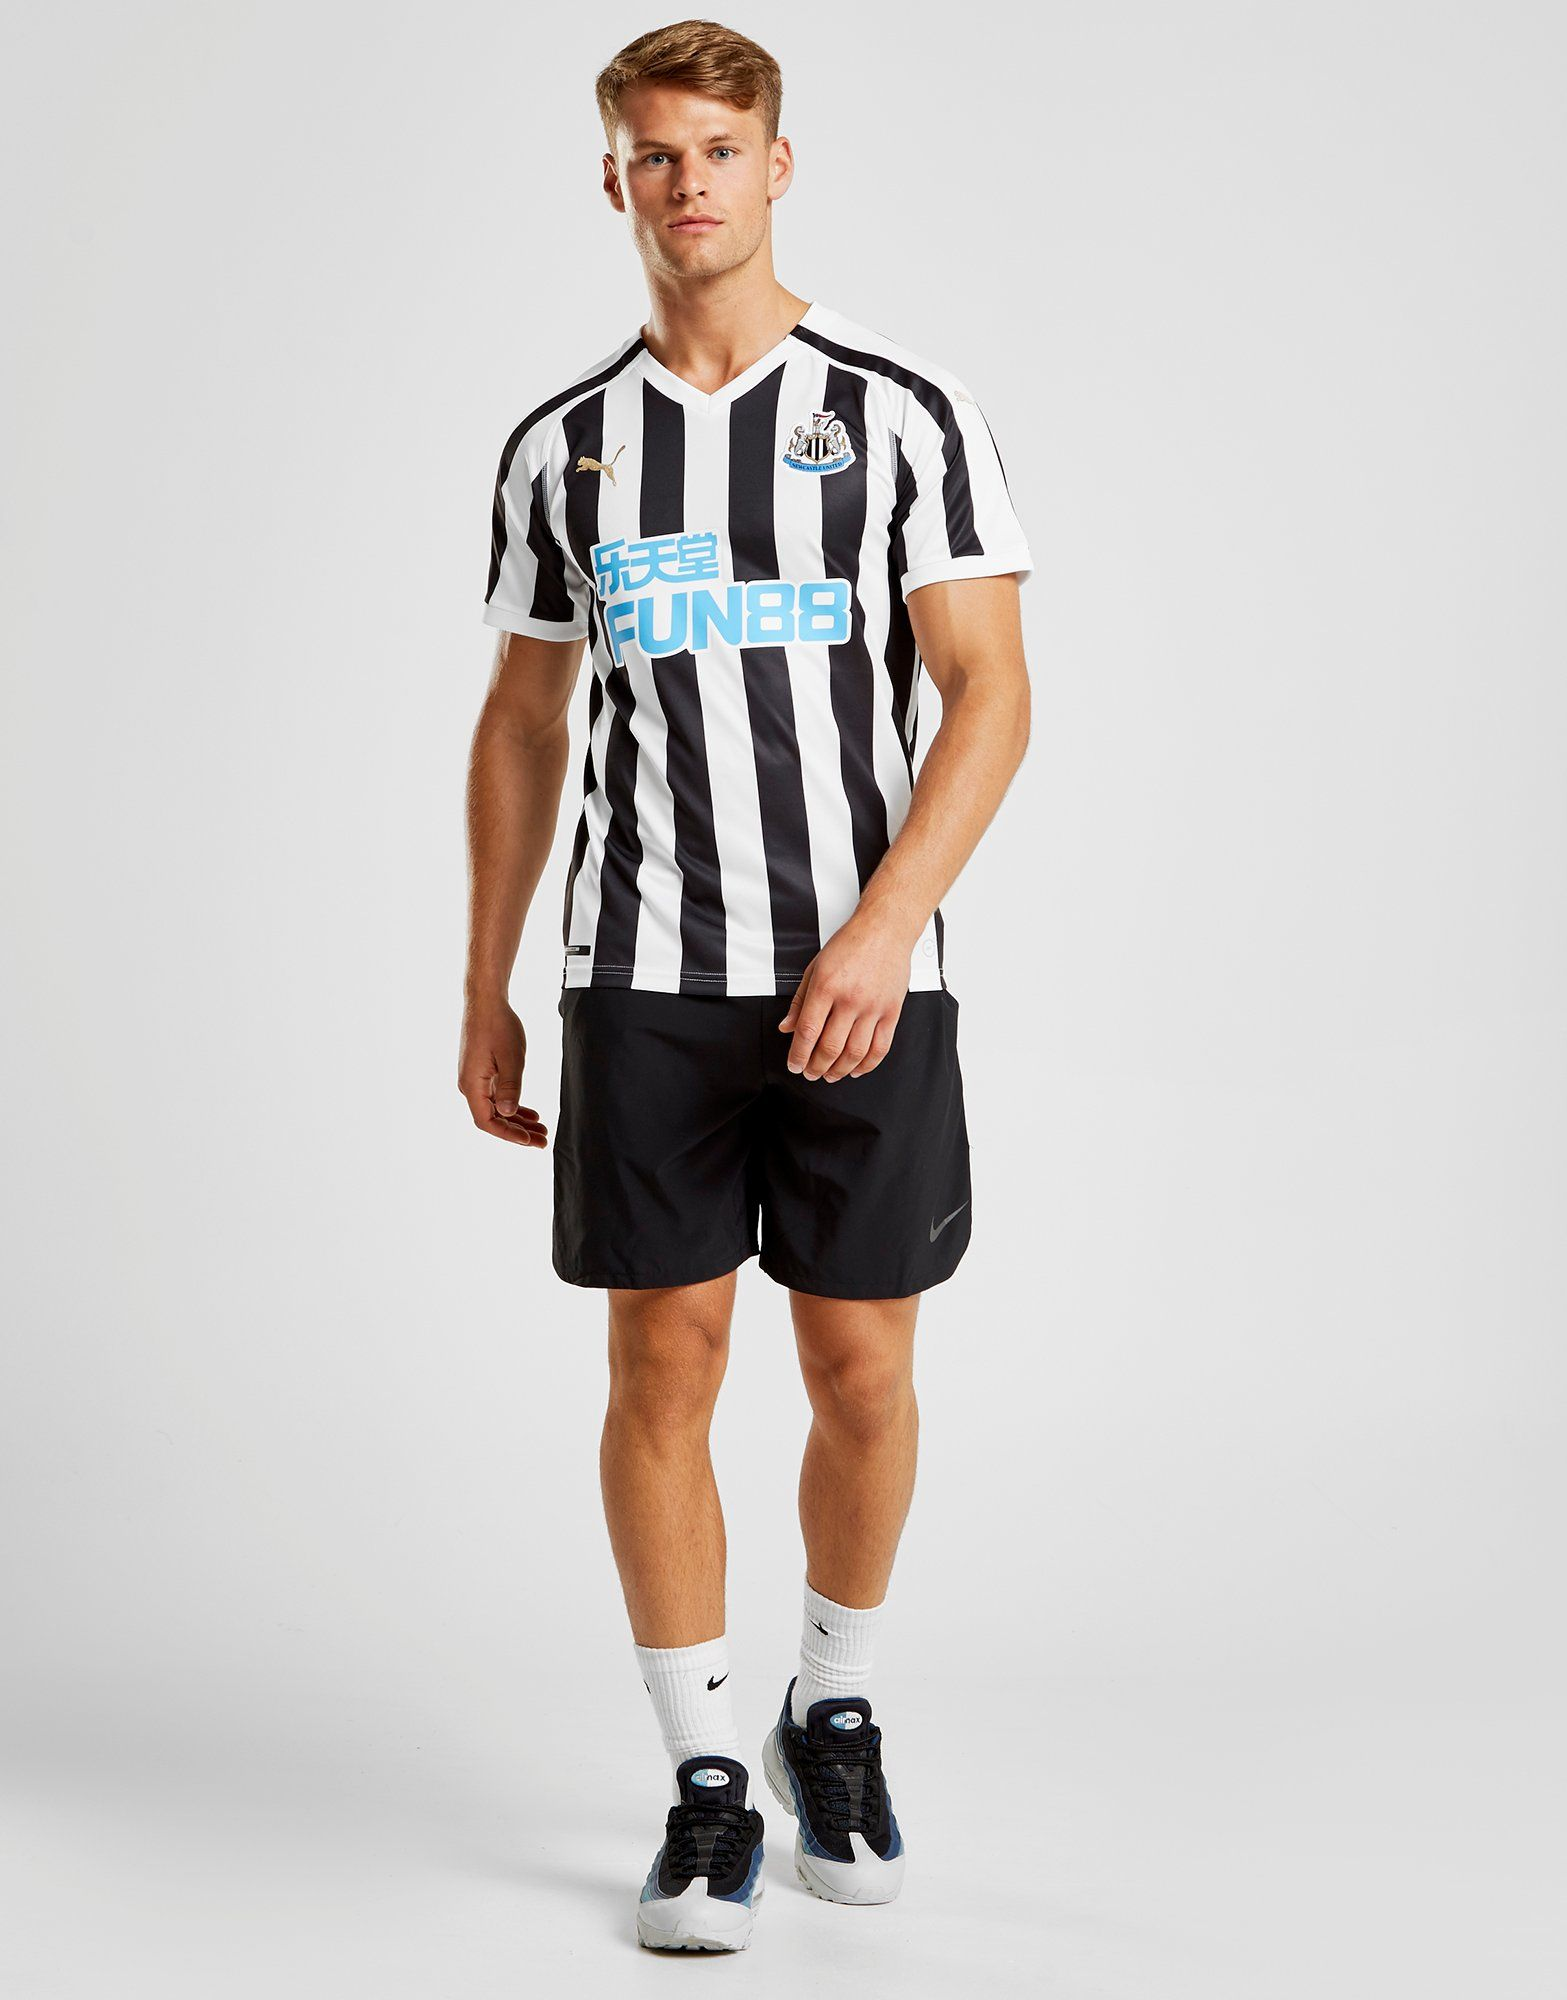 PUMA Newcastle United FC 2018/19 Home Shirt